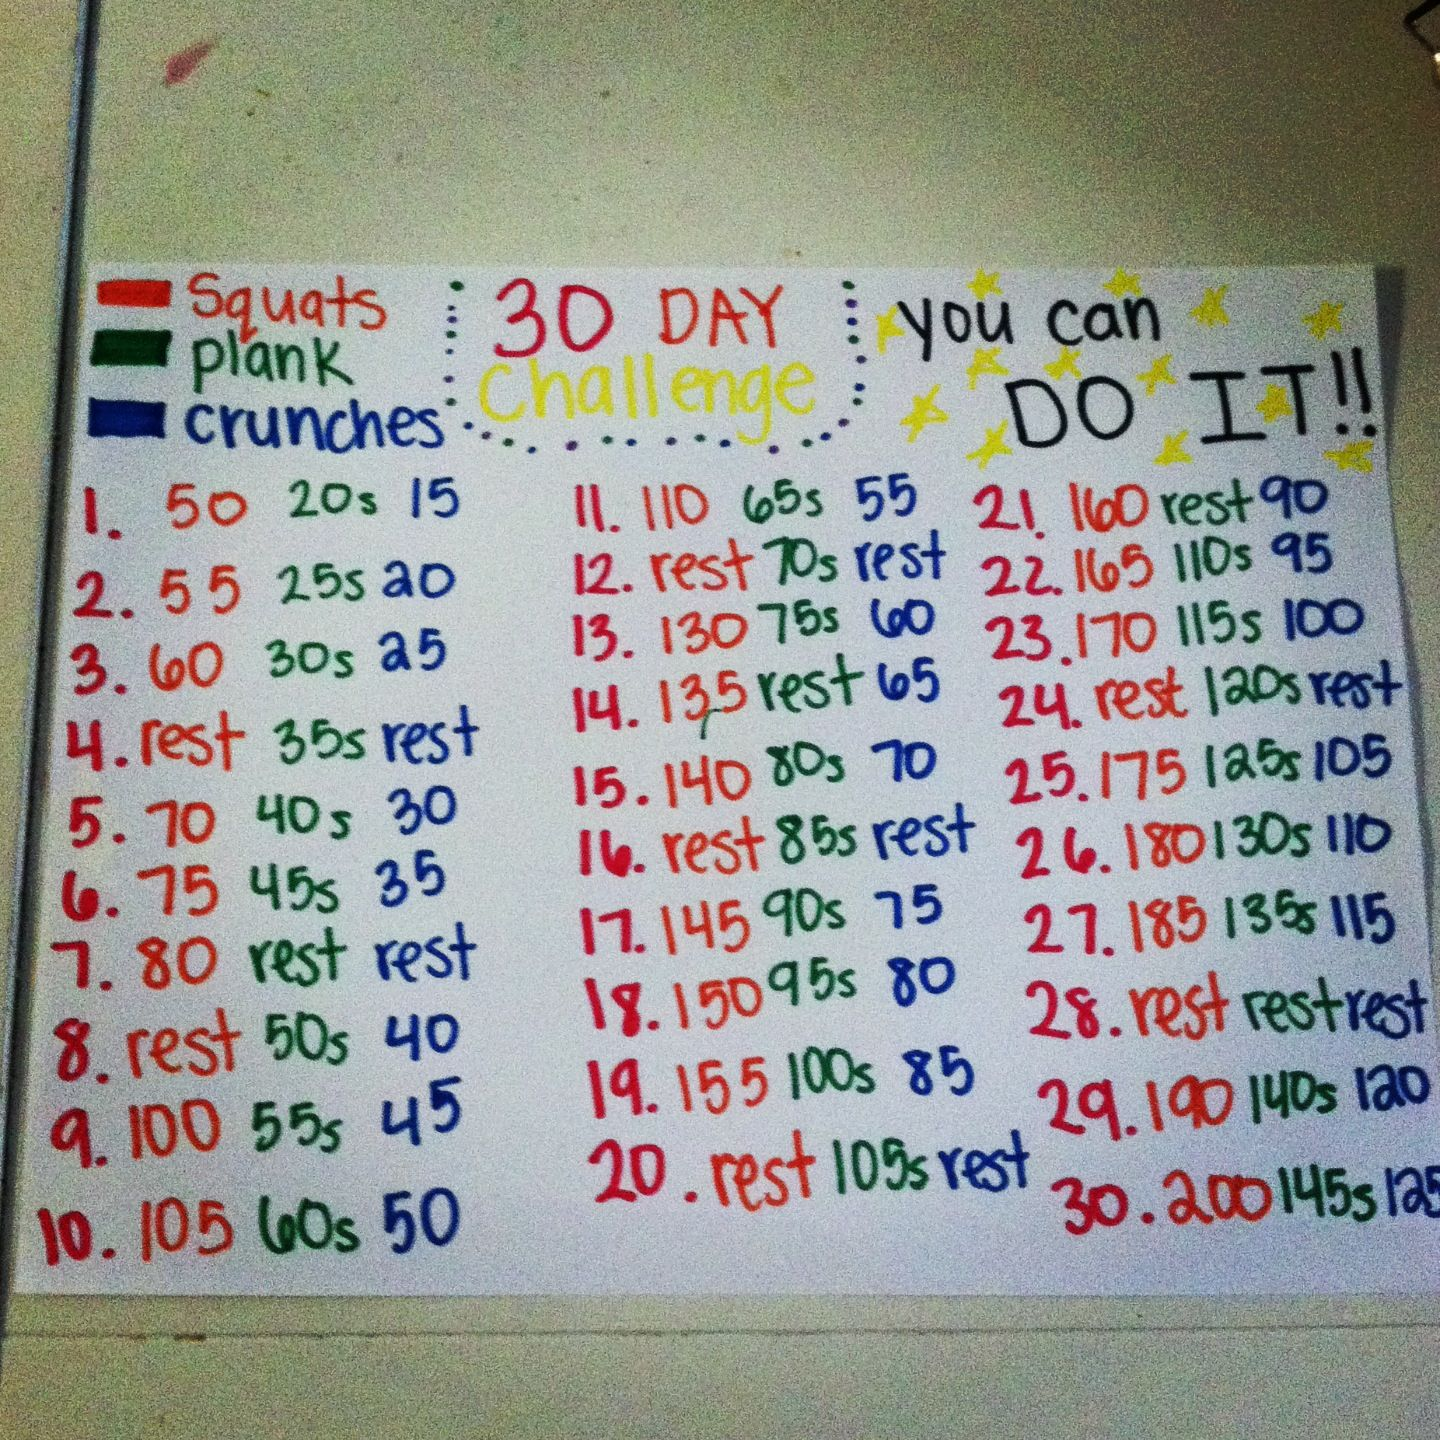 30 Day Challenge! Squats, plank & crunches